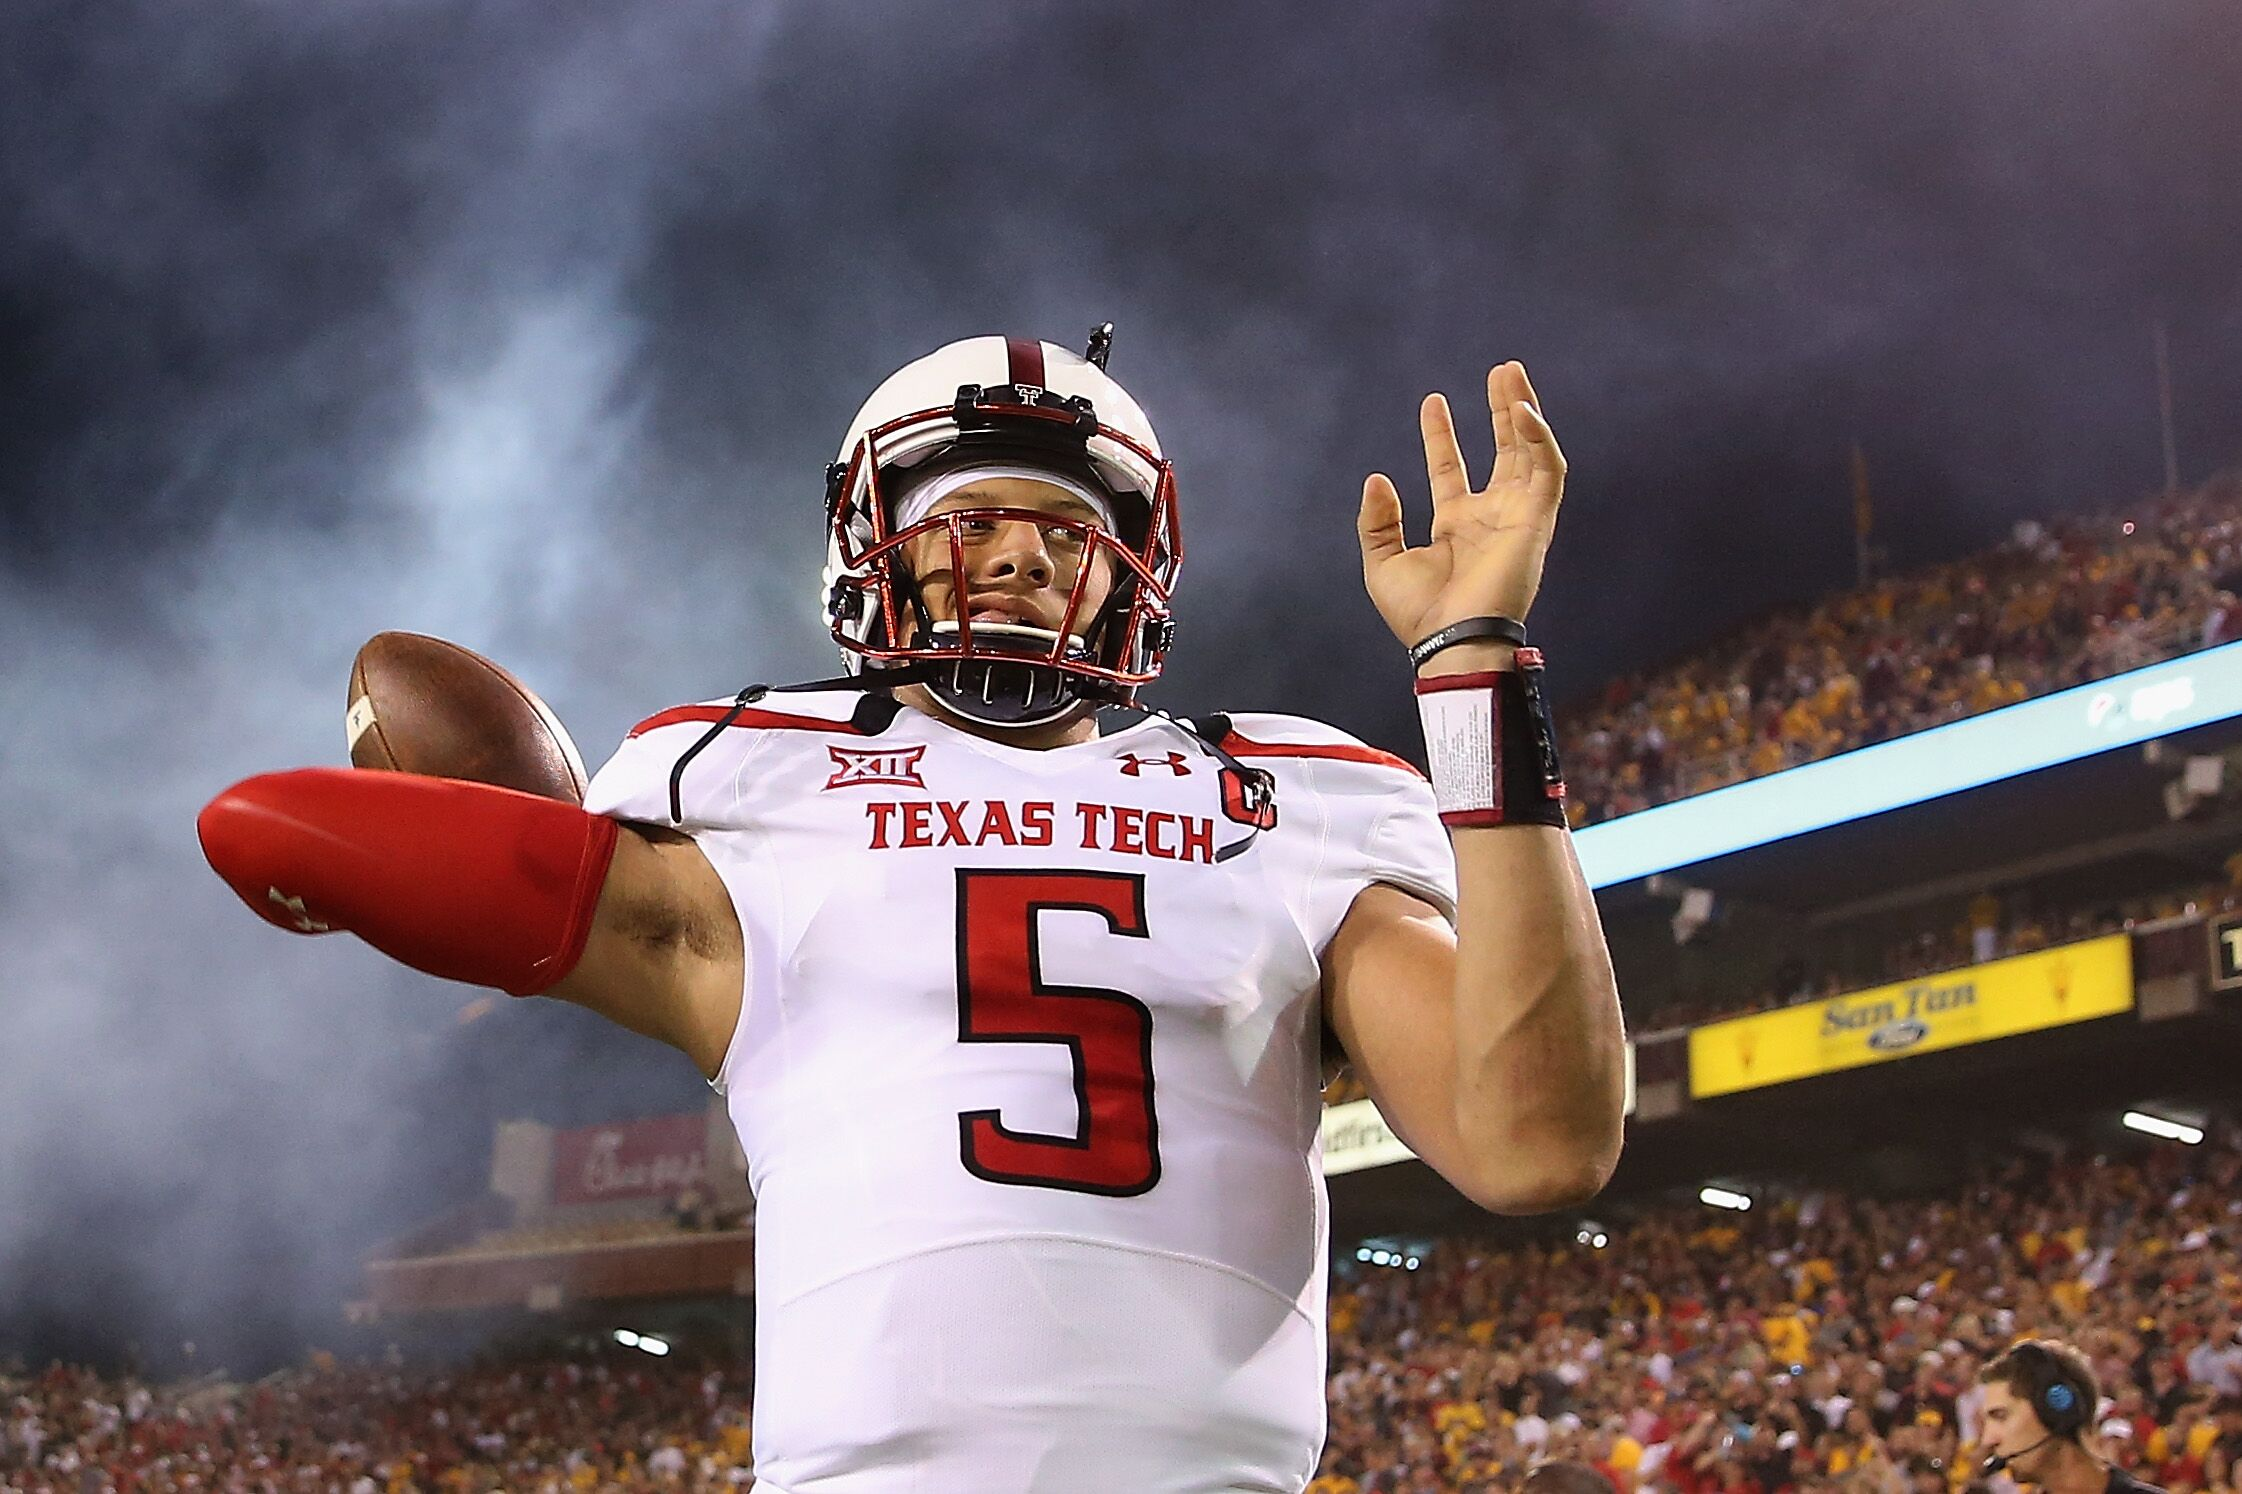 611466424-texas-tech-v-arizona-state.jpg